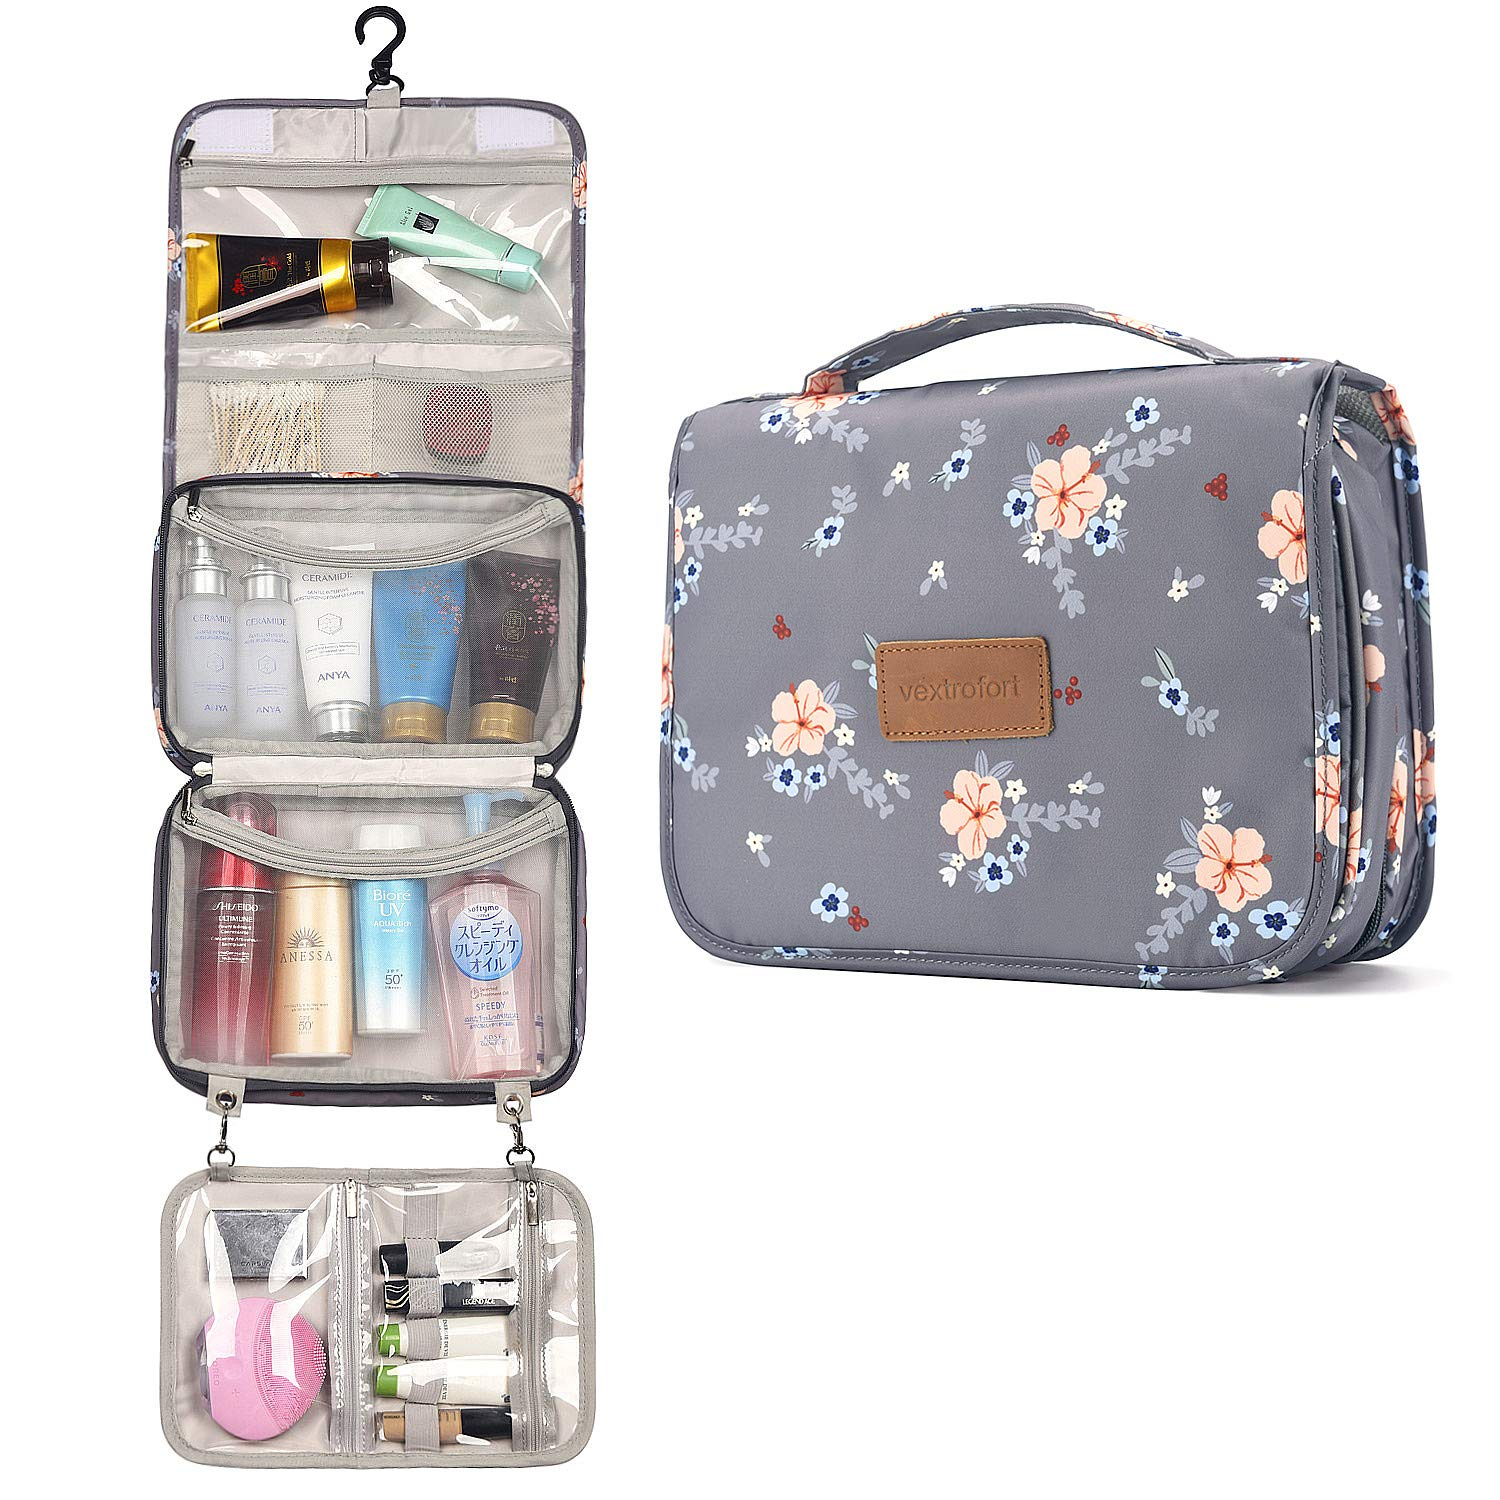 Toiletry Bag for Women, Large Hanging Travel Makeup Bag Water-resistant for Toiletries/Cosmetics/Brushes - Gray